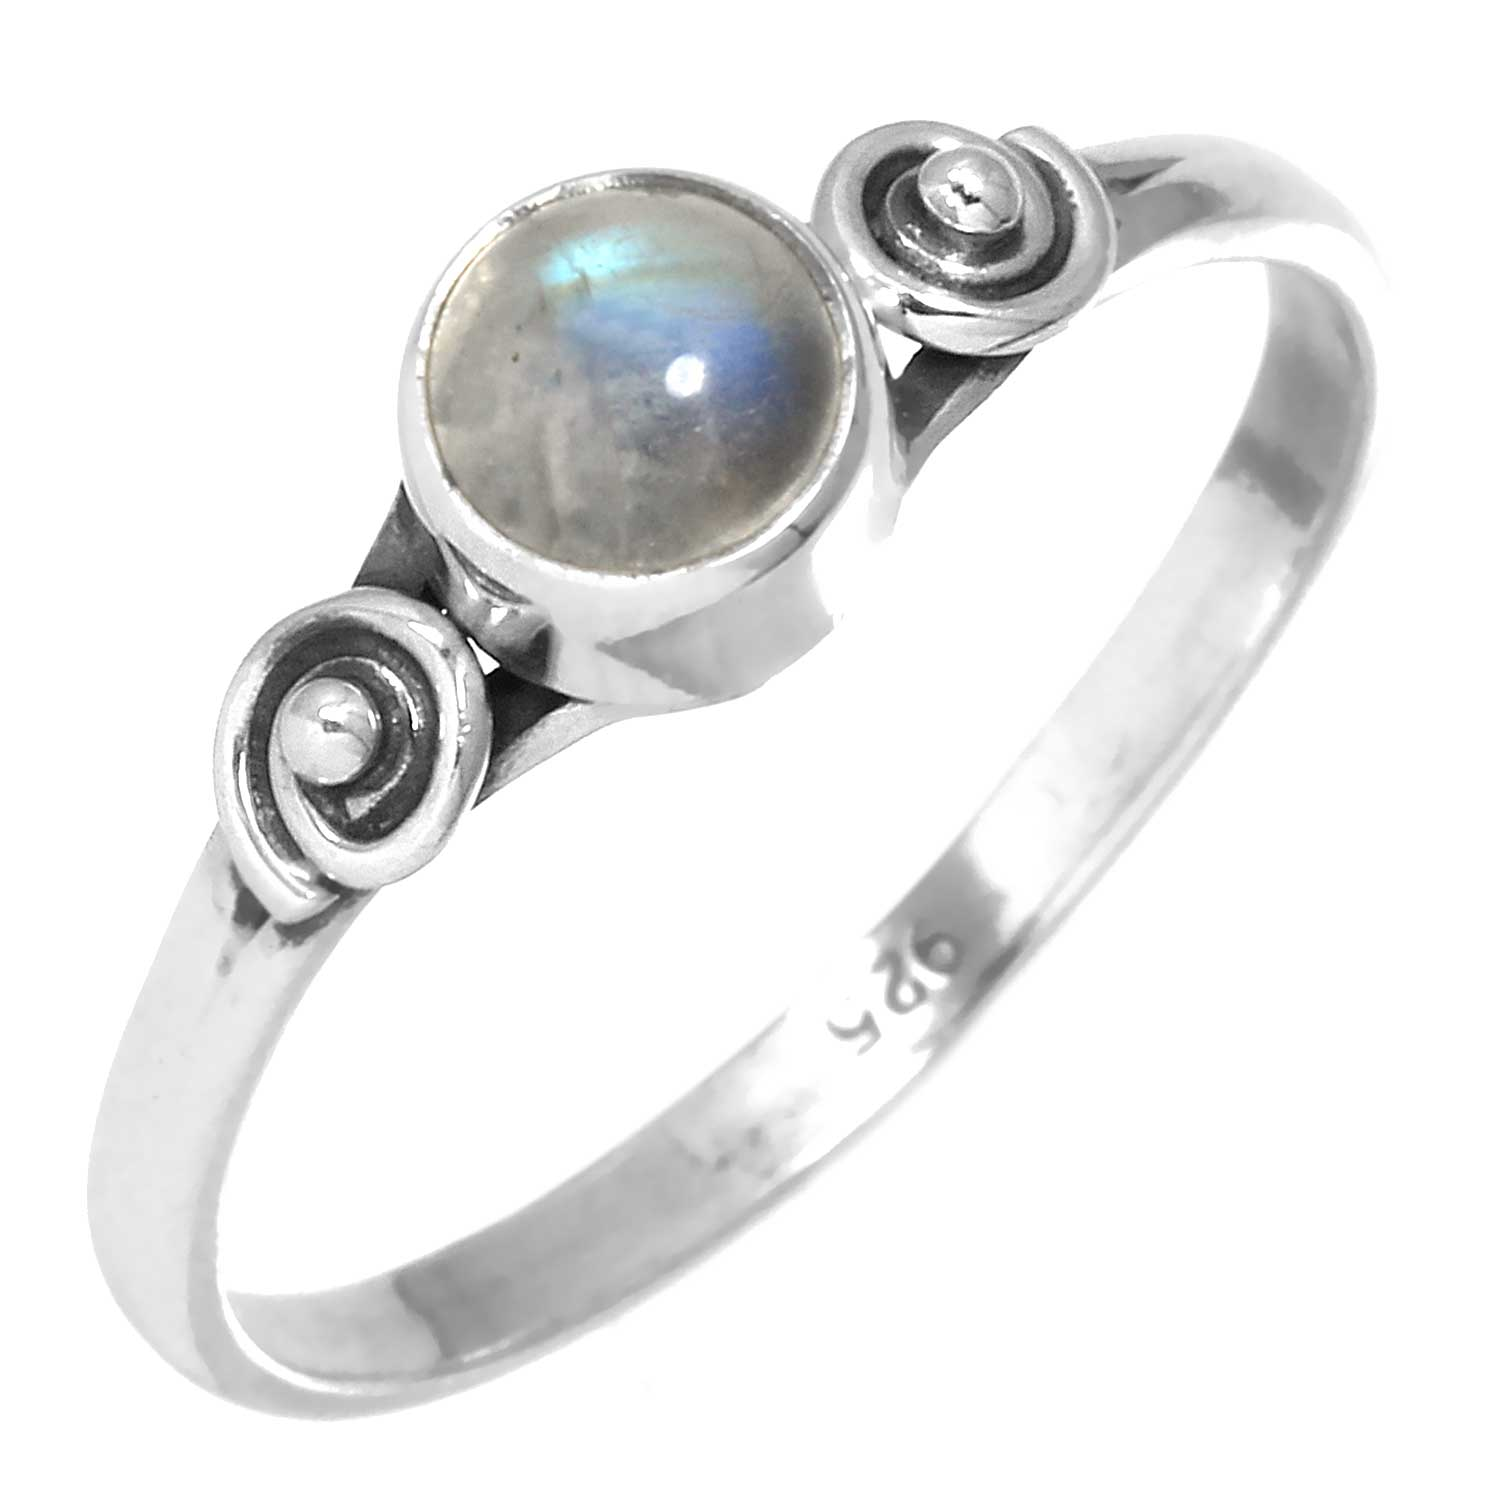 wholesale Wholesale Sterling Silver Ring5.99 (rg802rm)